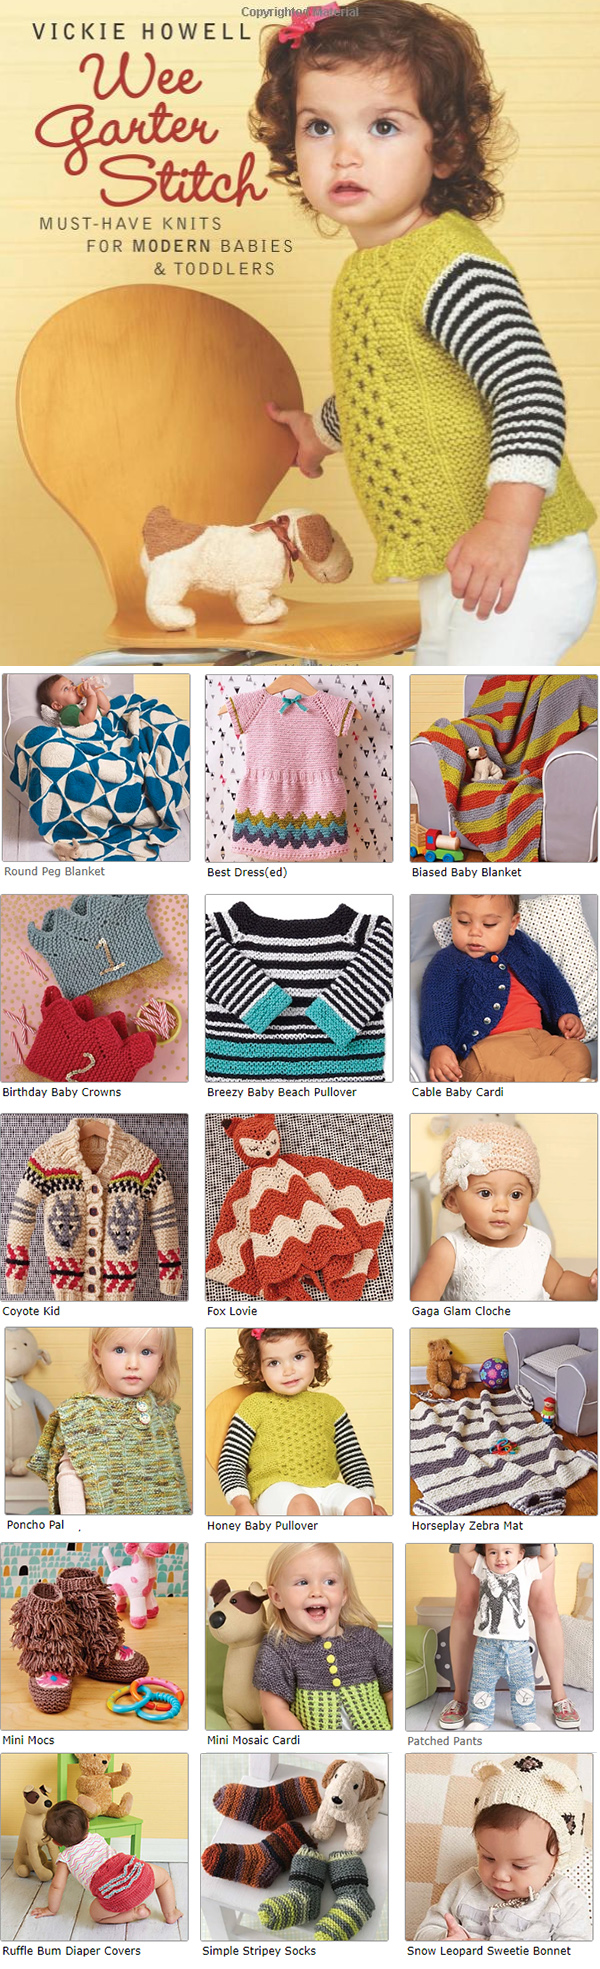 Knitting Pattern for Wee Garter Stitch: Must-Have Knits for Modern Babies & Toddlers